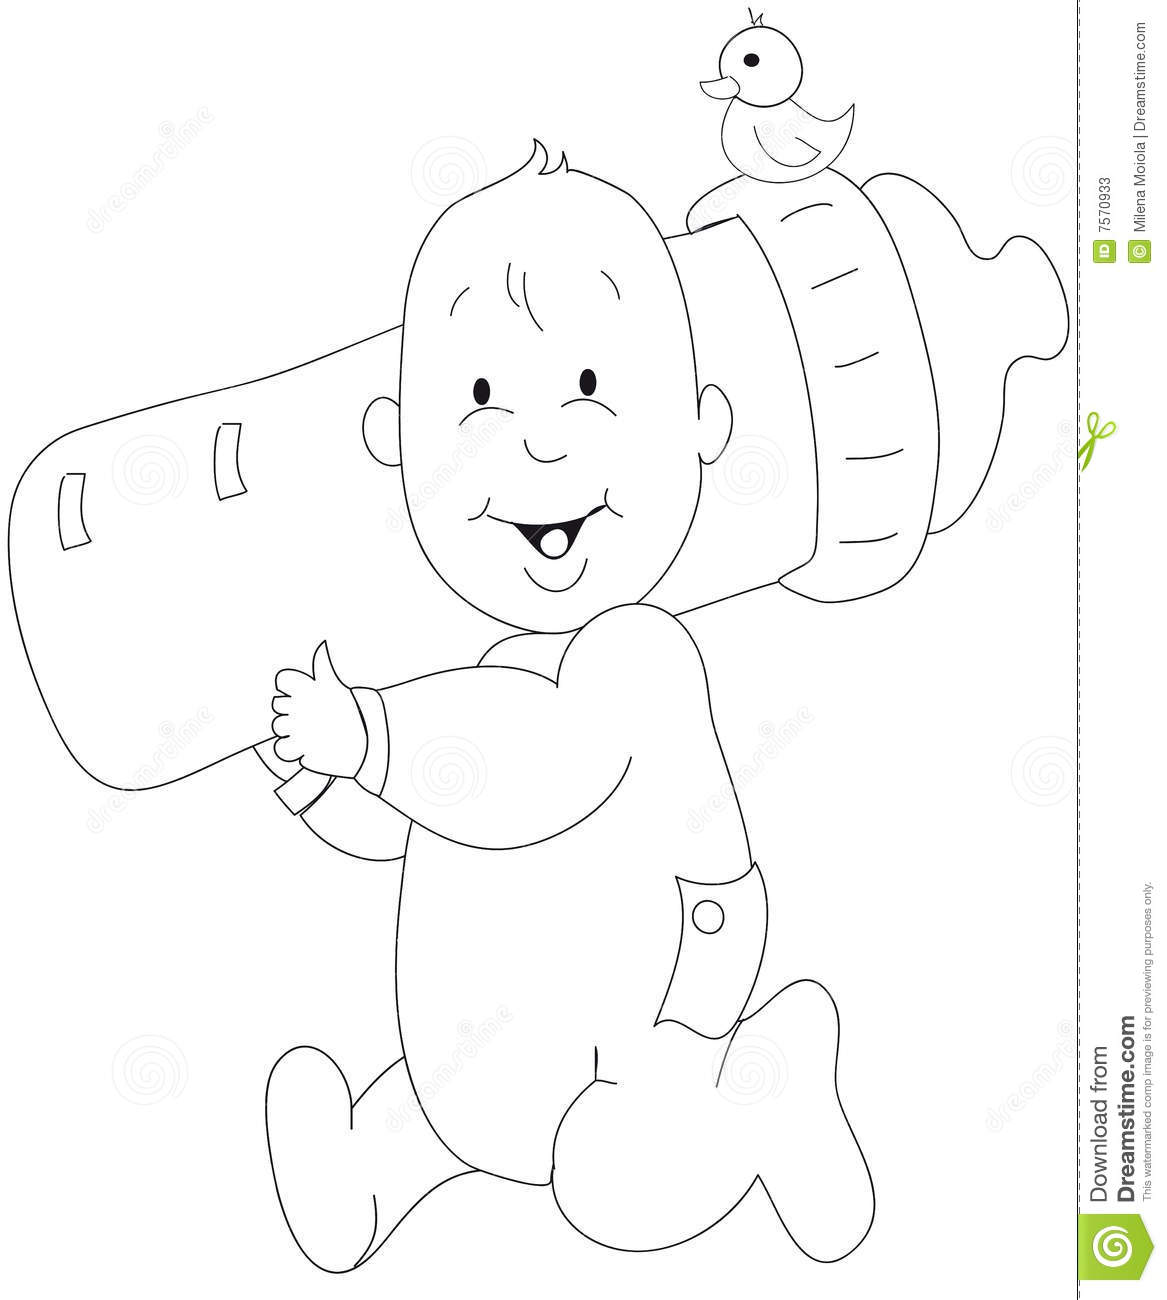 Baby Illustration Stock Photos